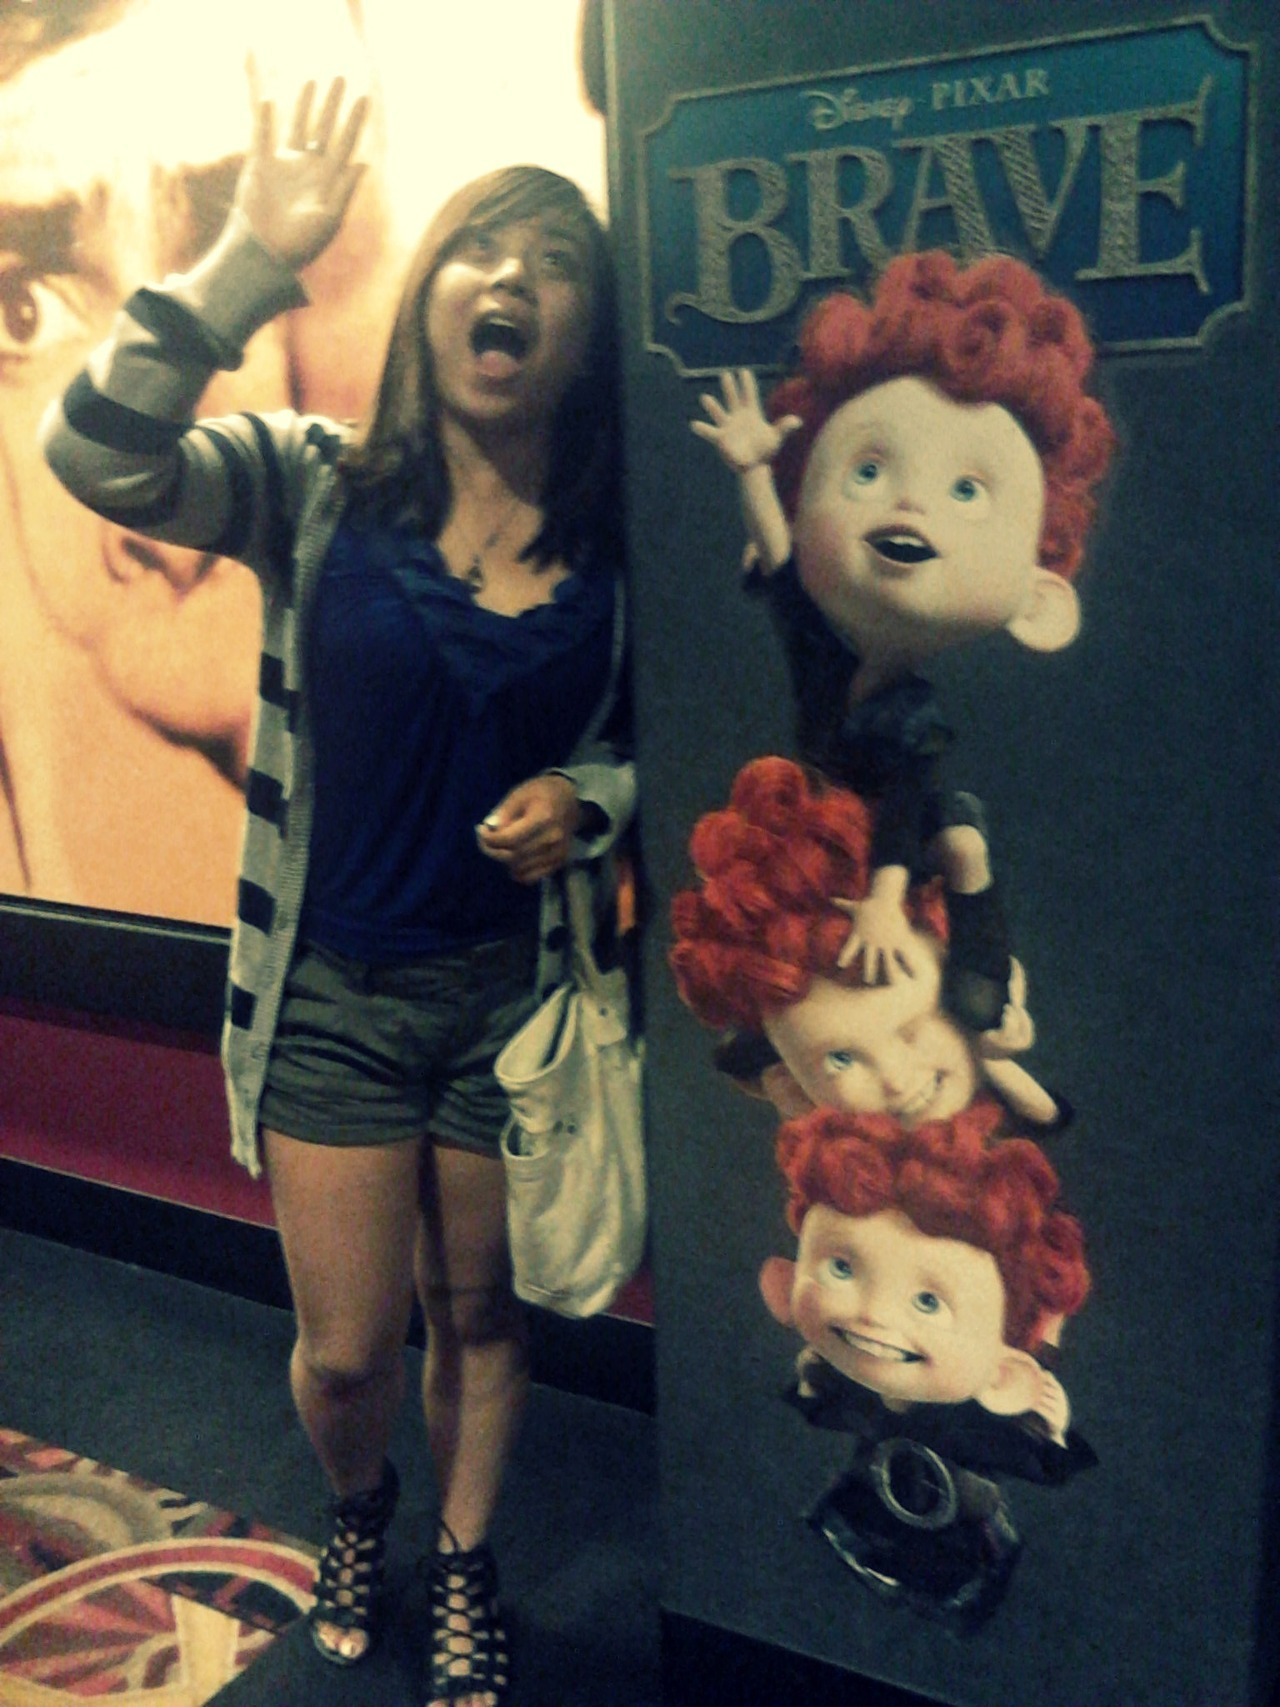 first movie watched in theaters as a family—Brave :D what a good choice. here's me being a derp LOL